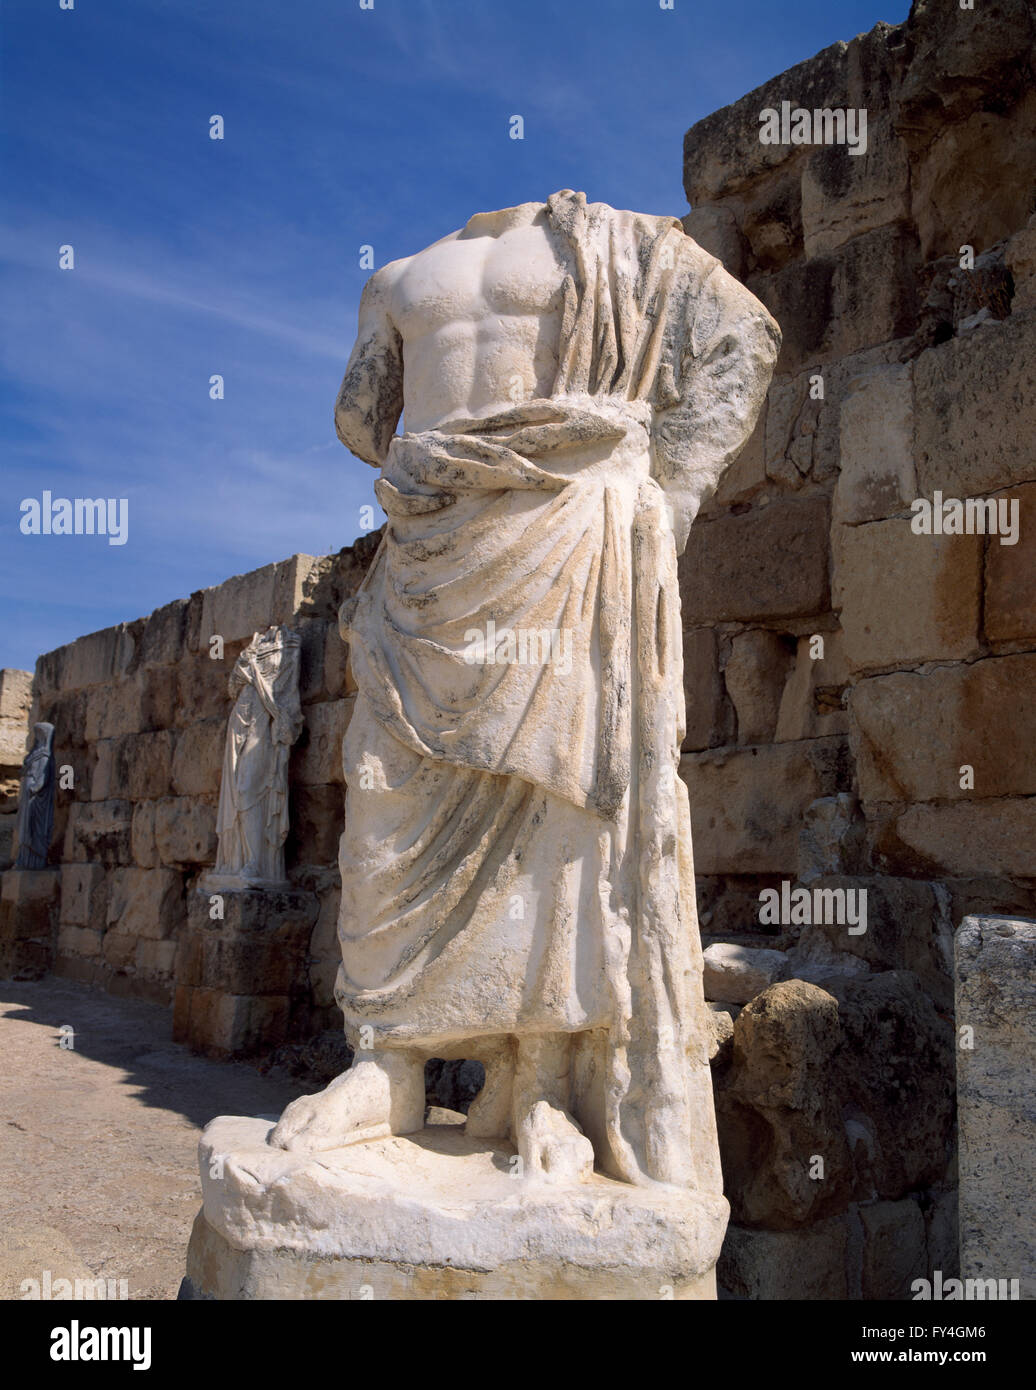 Statue in Salamis, North CYPRUS, Europe - Stock Image